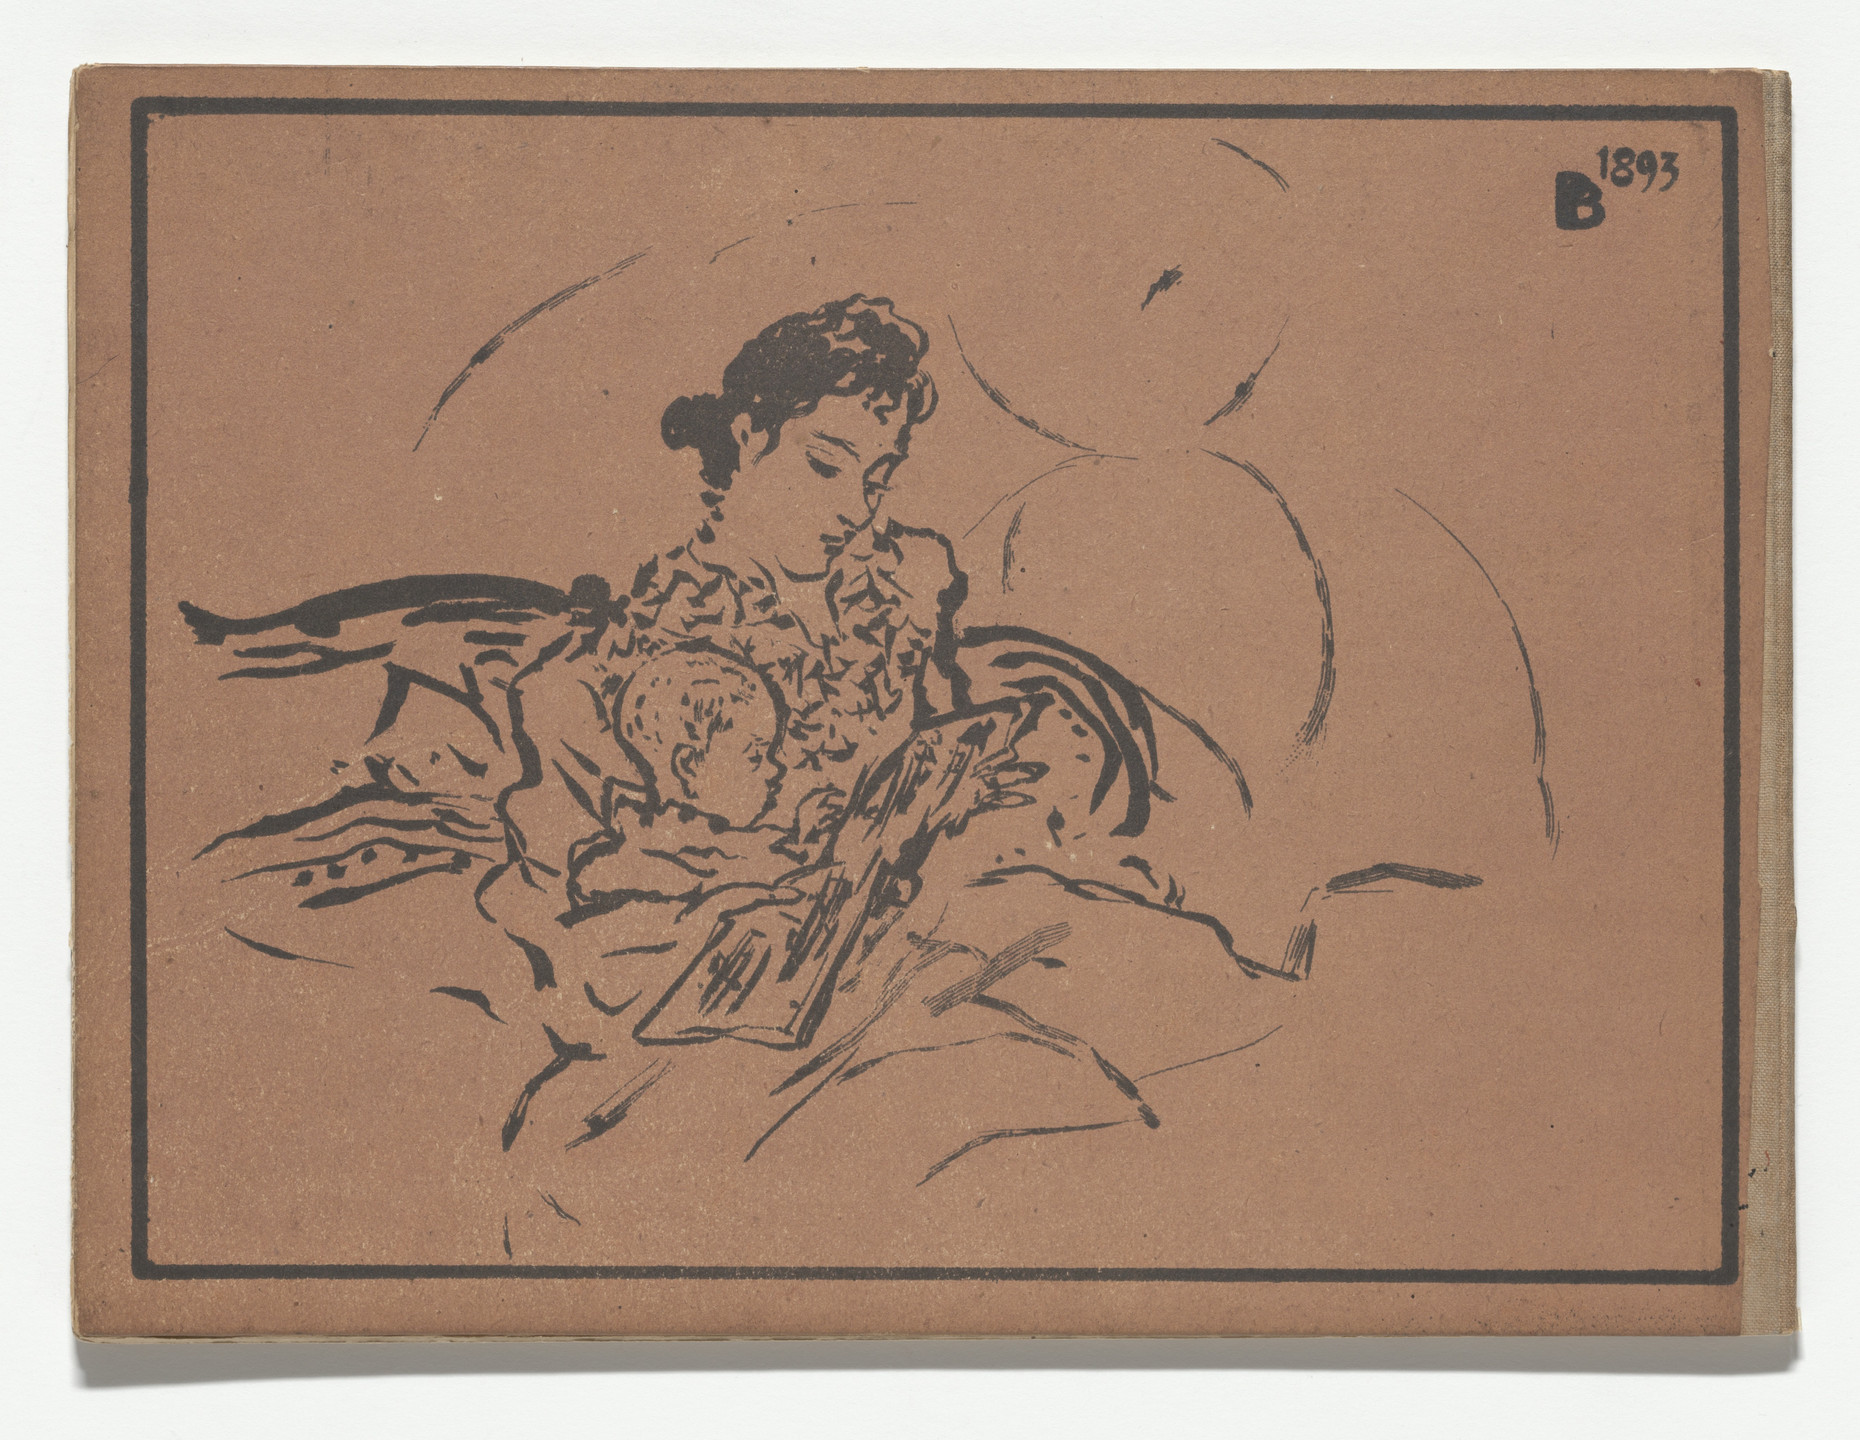 Pierre Bonnard. Back cover from Petit solfège illustré (Little Illustrated Solfège). 1893 (reproduced drawings executed 1891–93)